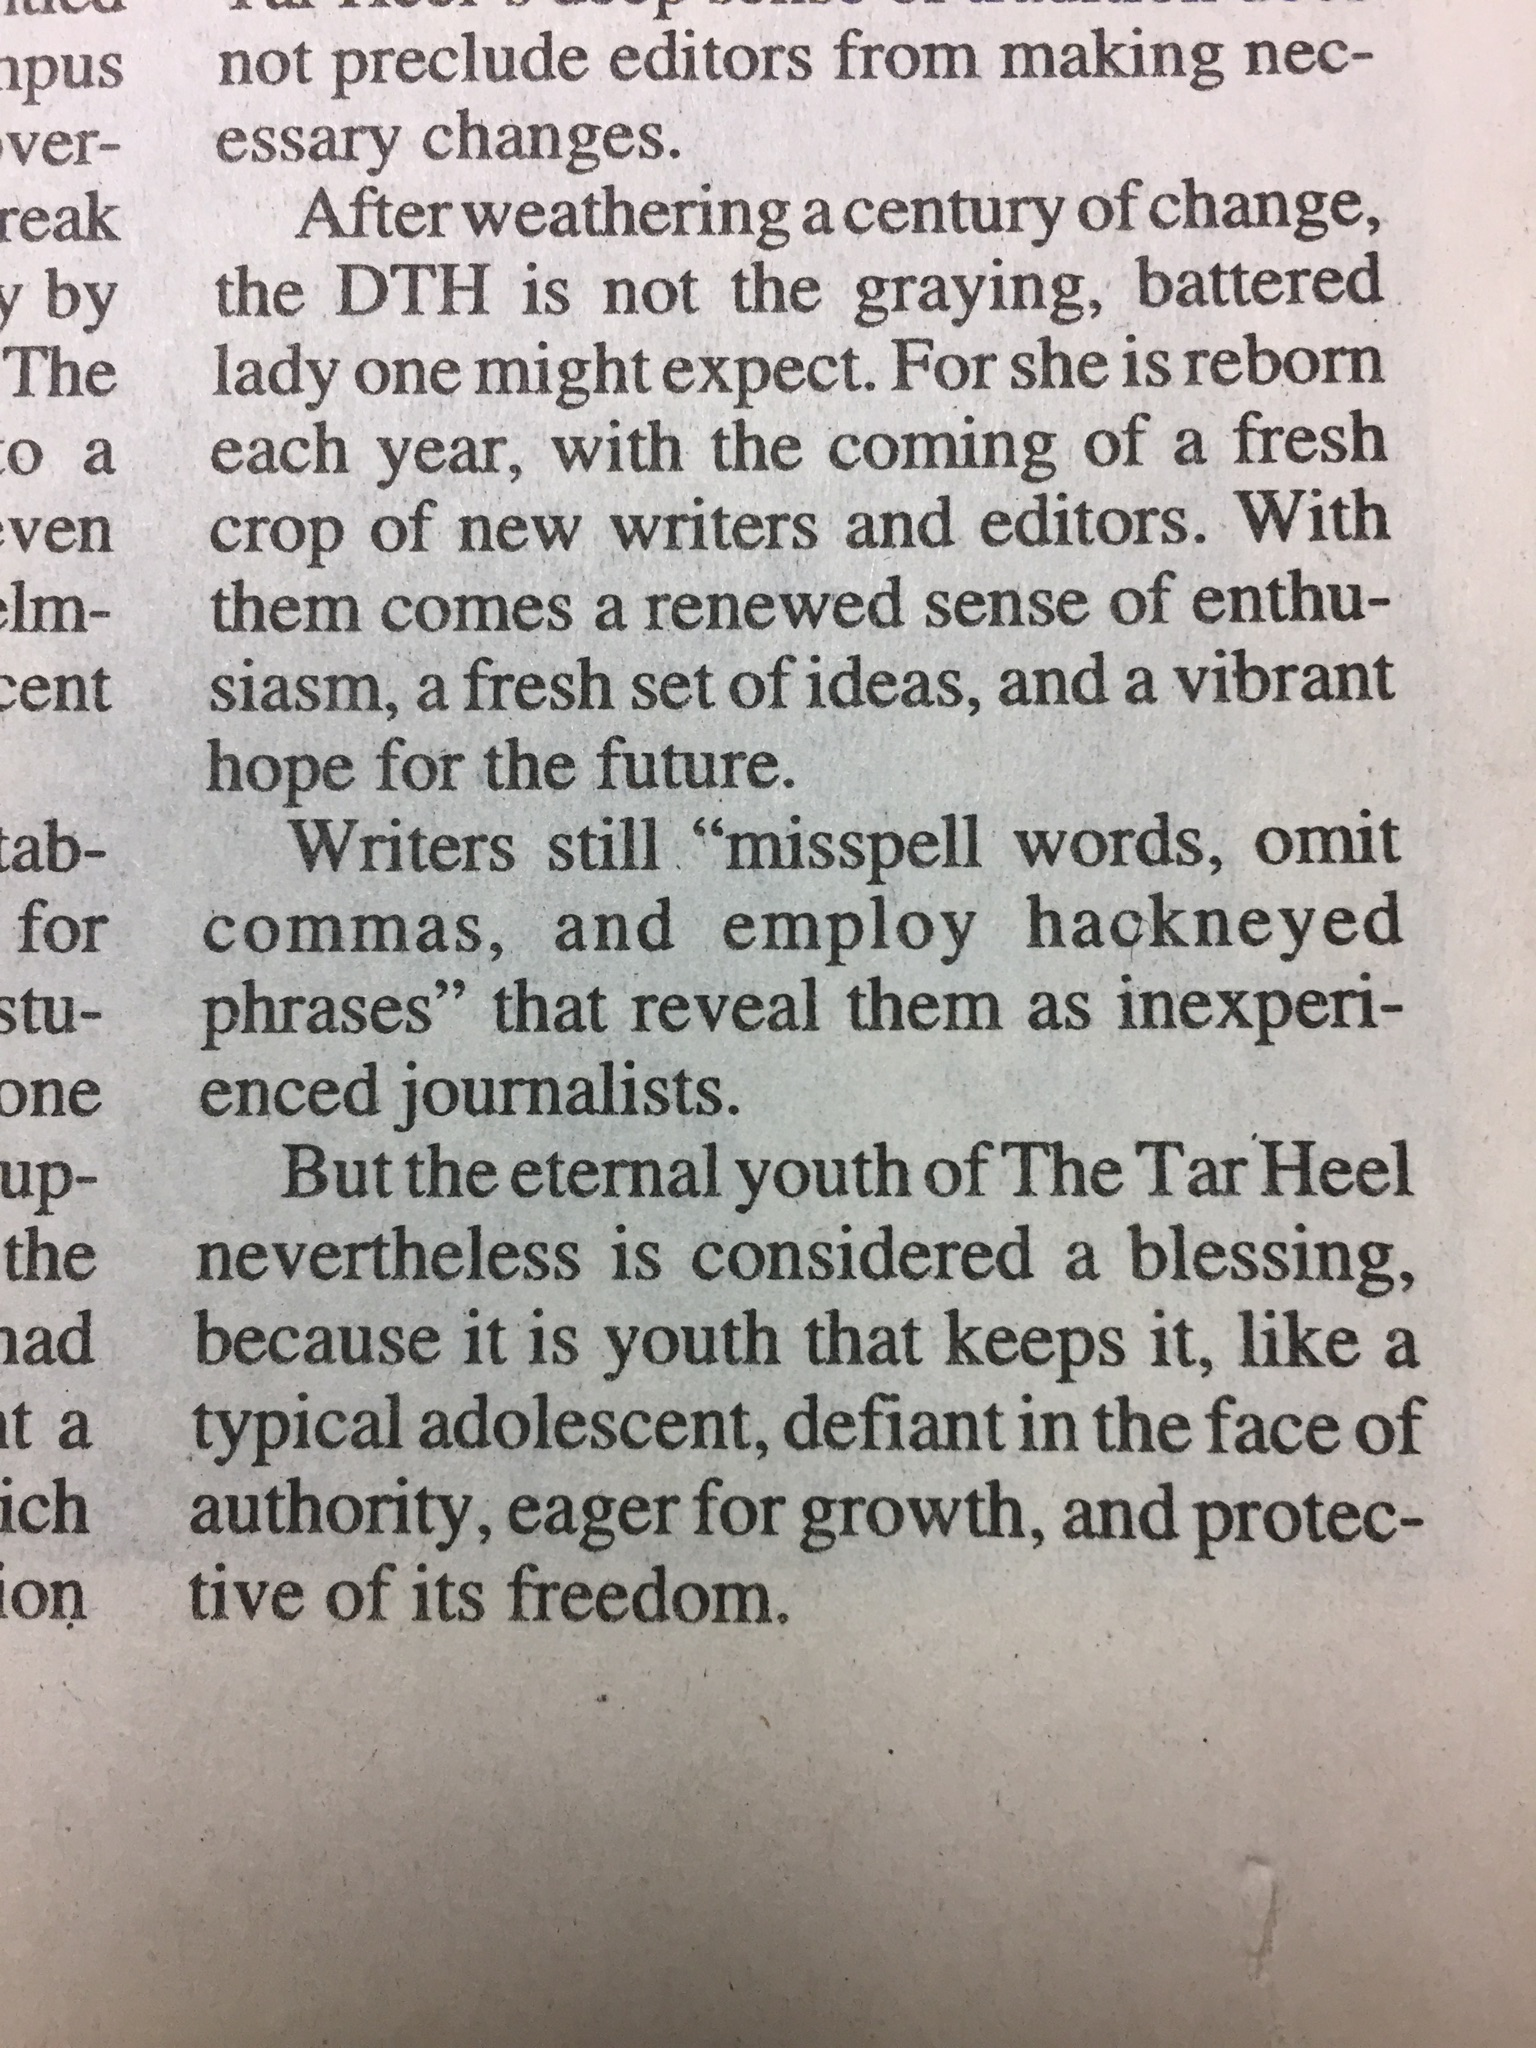 Celebrate The Eternal Youth Of The Daily Tar Heel With Shirts And  The Quote Has Inspired Generations Of Dthers To Ask Tough Questions And  Challenge The Quo This Year As We Celebrate The Newspapers Th  Birthday